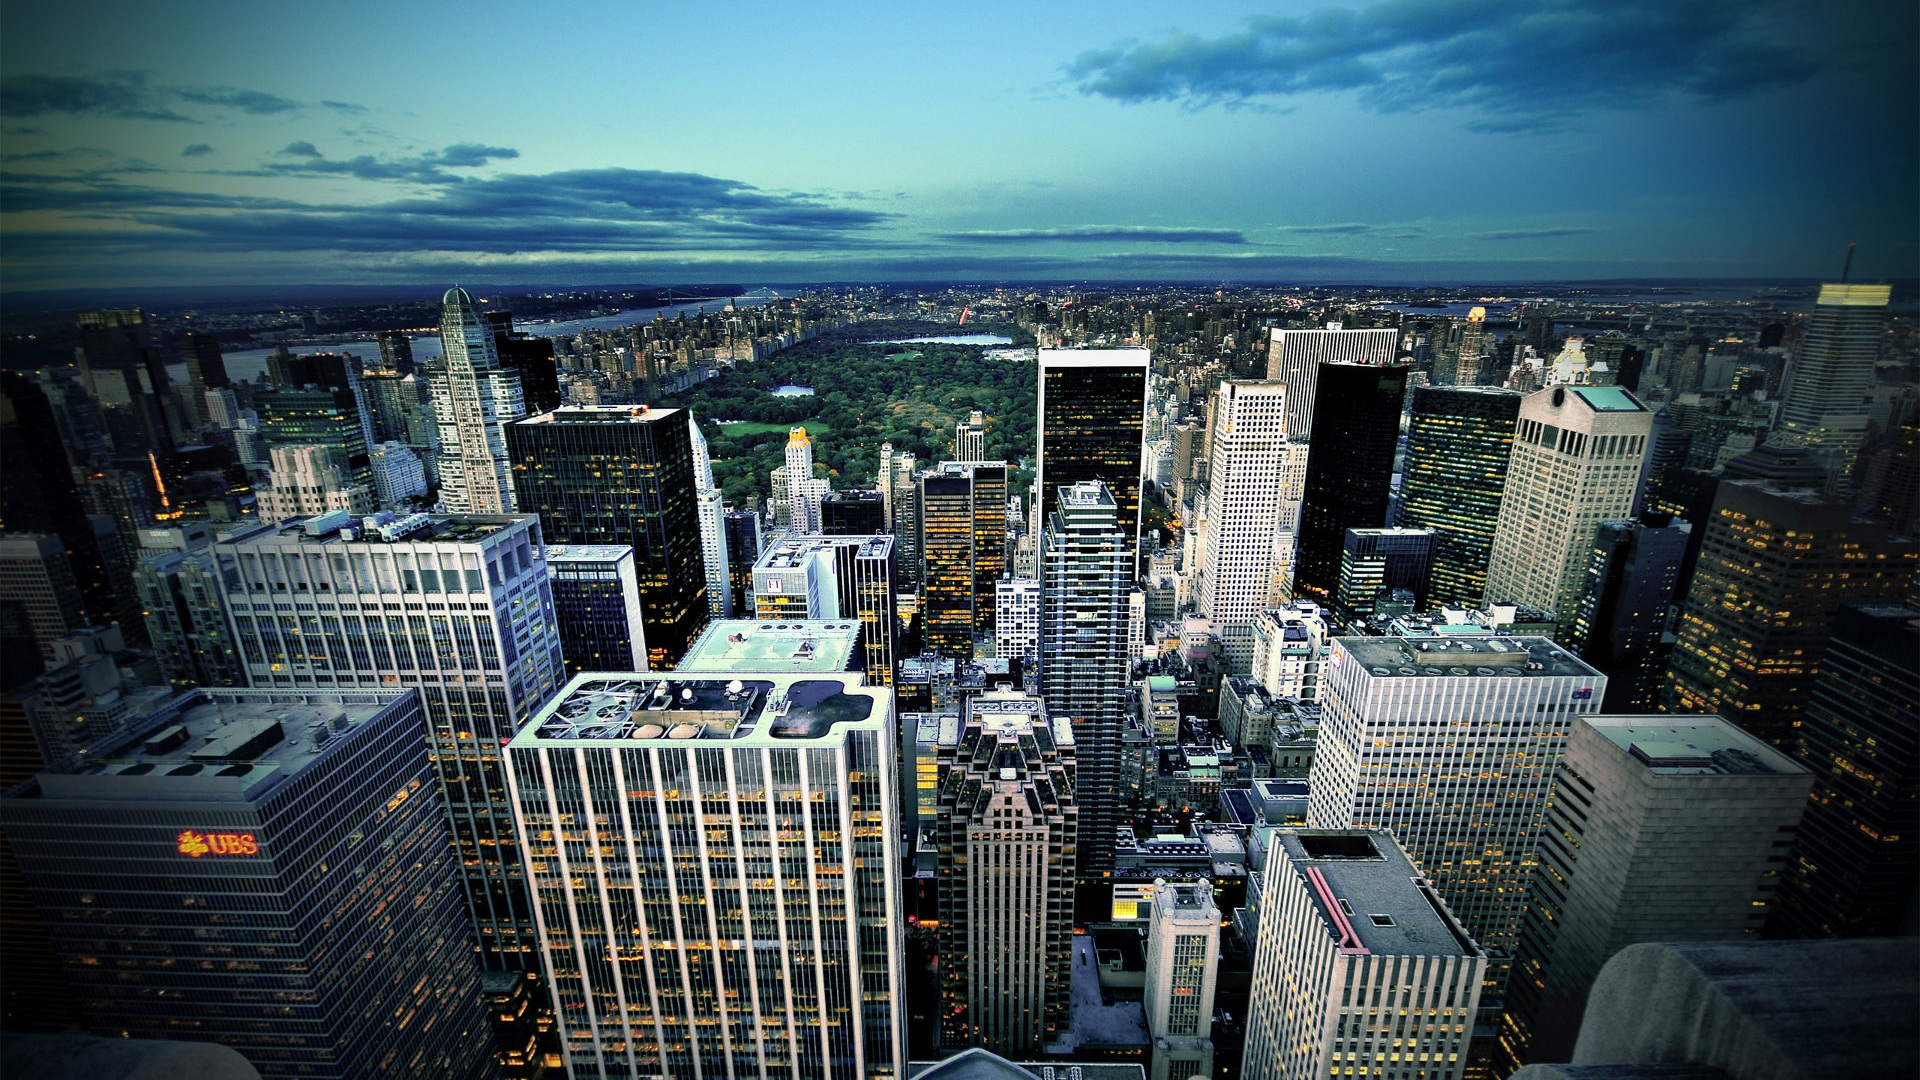 Wallpaper New York City from above 1920x1200 HD Picture, Image Dark Forest Wallpapers Widescreen